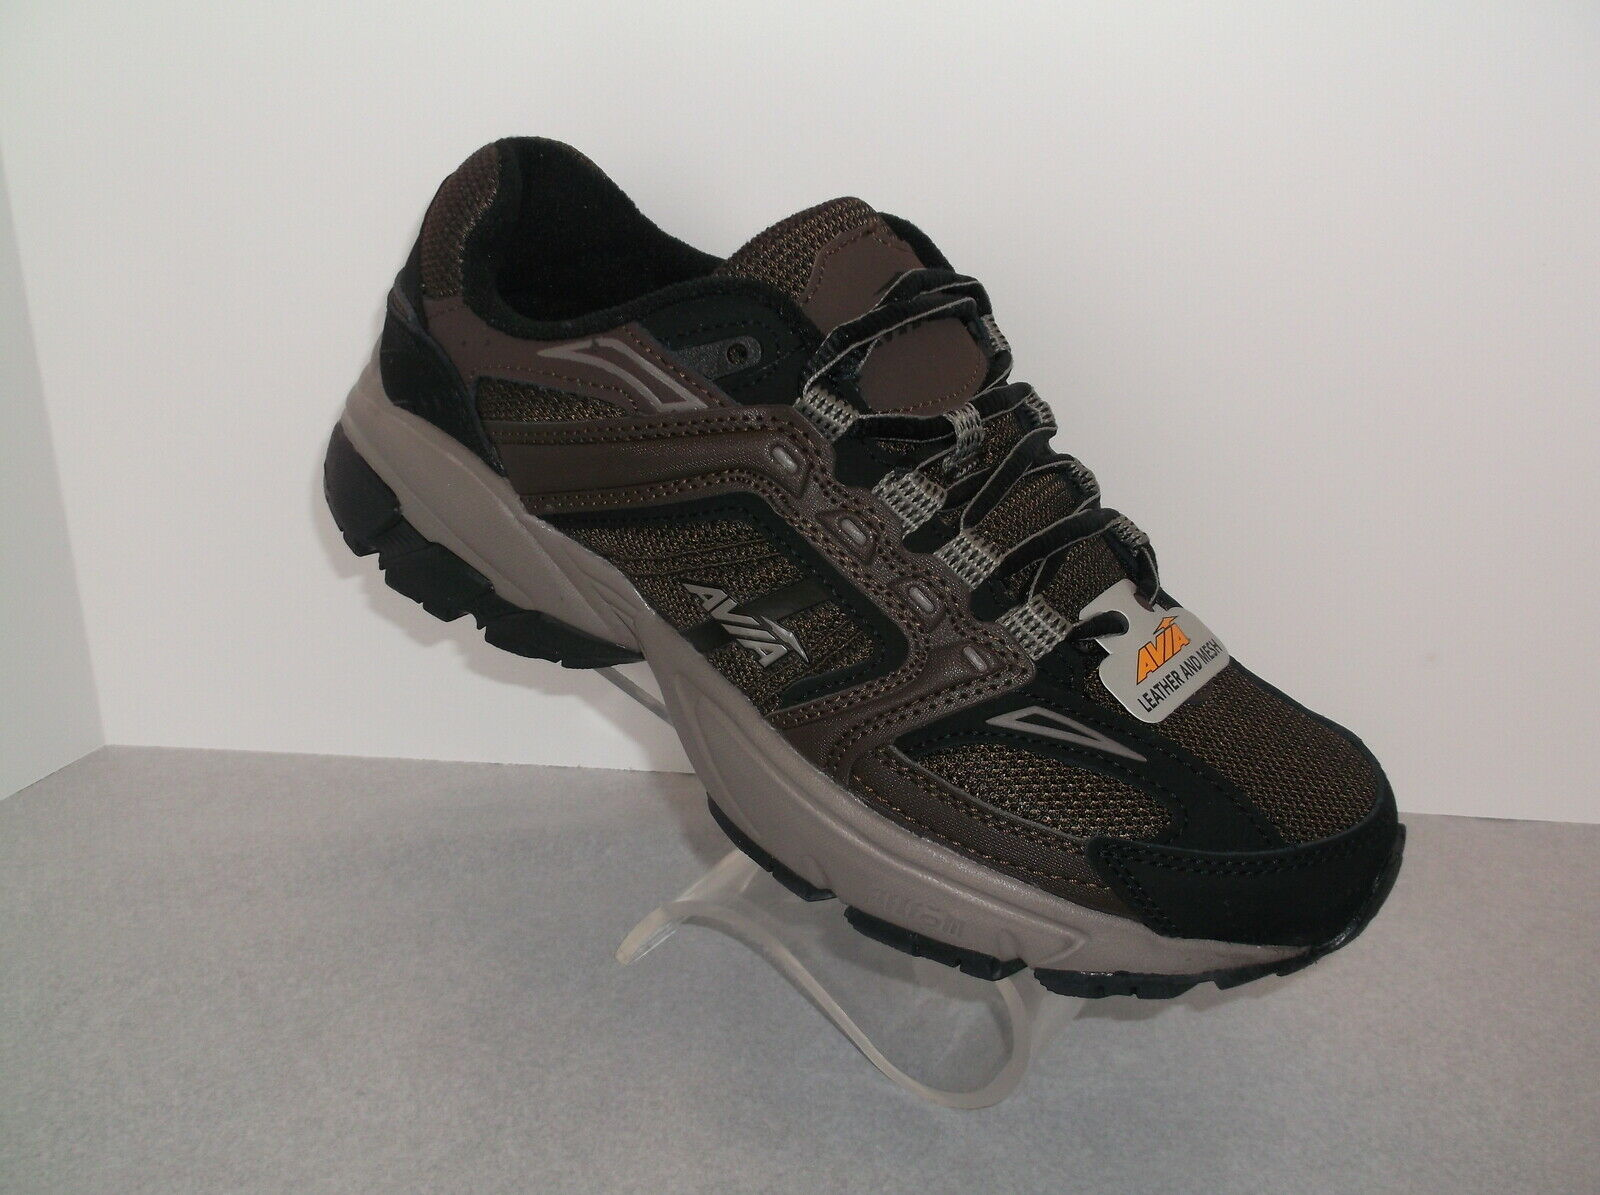 AVIA (JAG) BROWN LEATHER AND MESH MEMORY FOAM MEN'S WALKING SHOE NEW